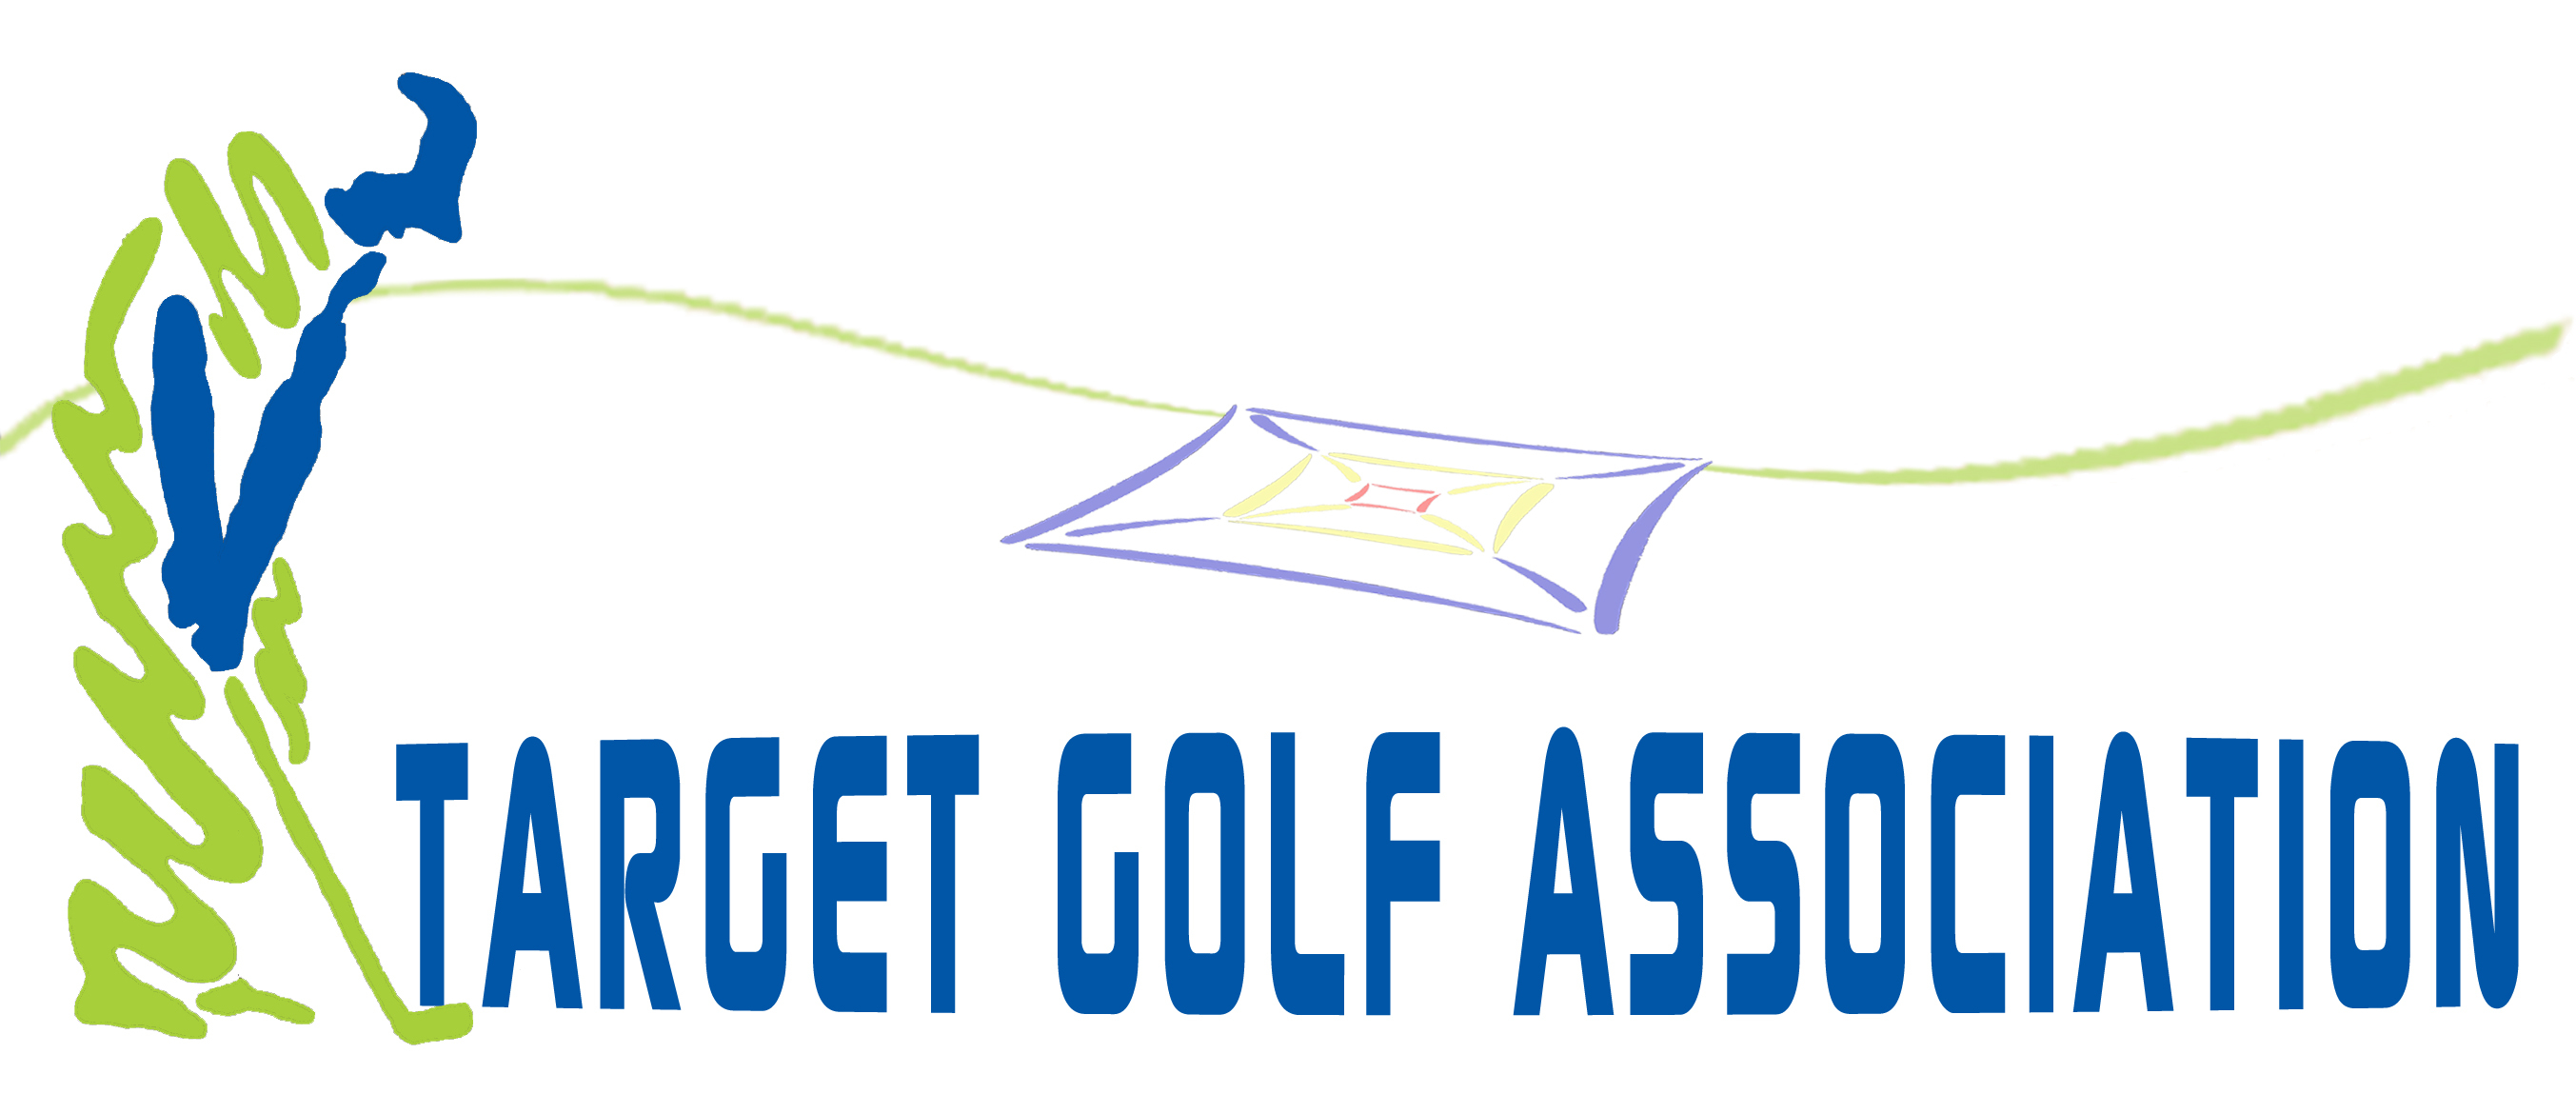 Target Golf Association